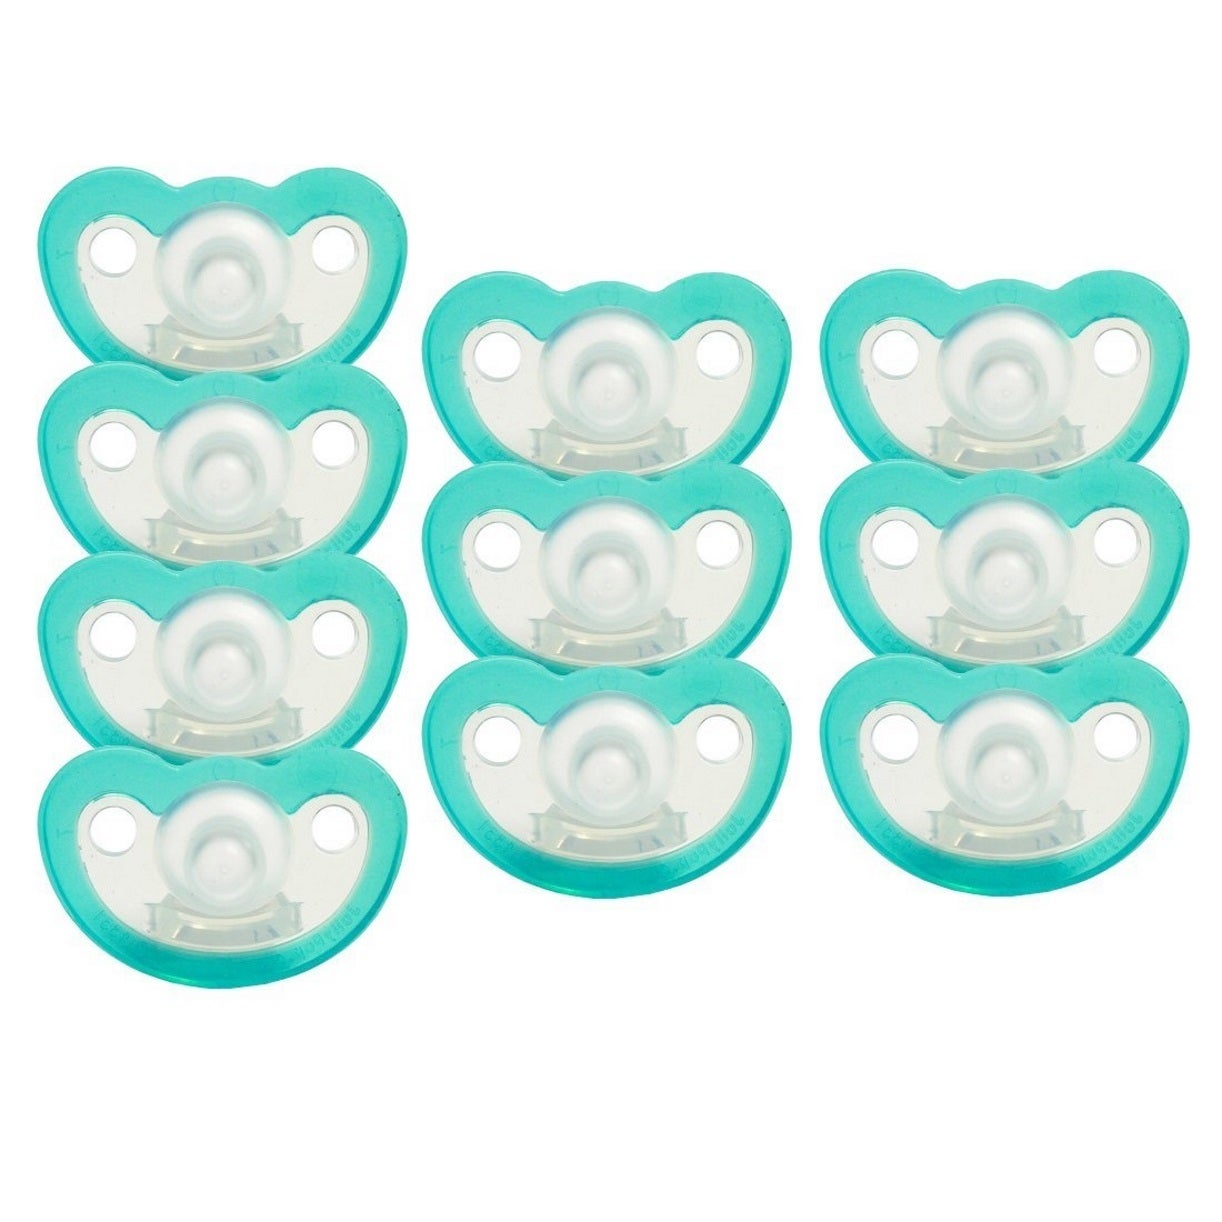 JollyPop Teal Silicone Pacifier Preemie Unscented (10 Pac...